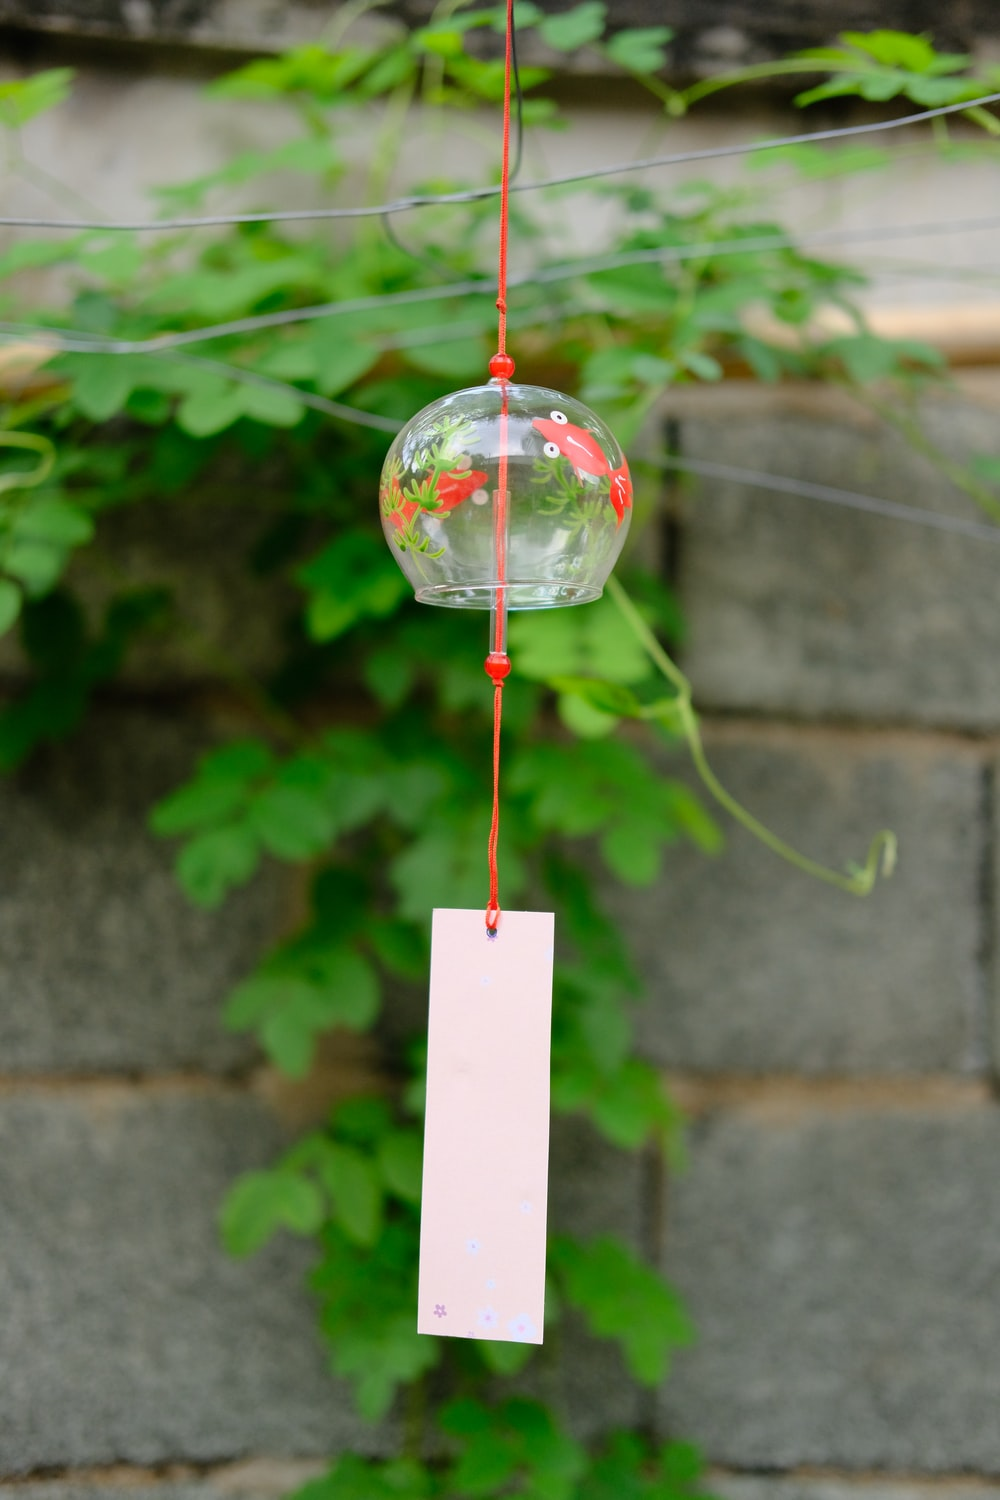 clear glass hanging decor with red and white rope